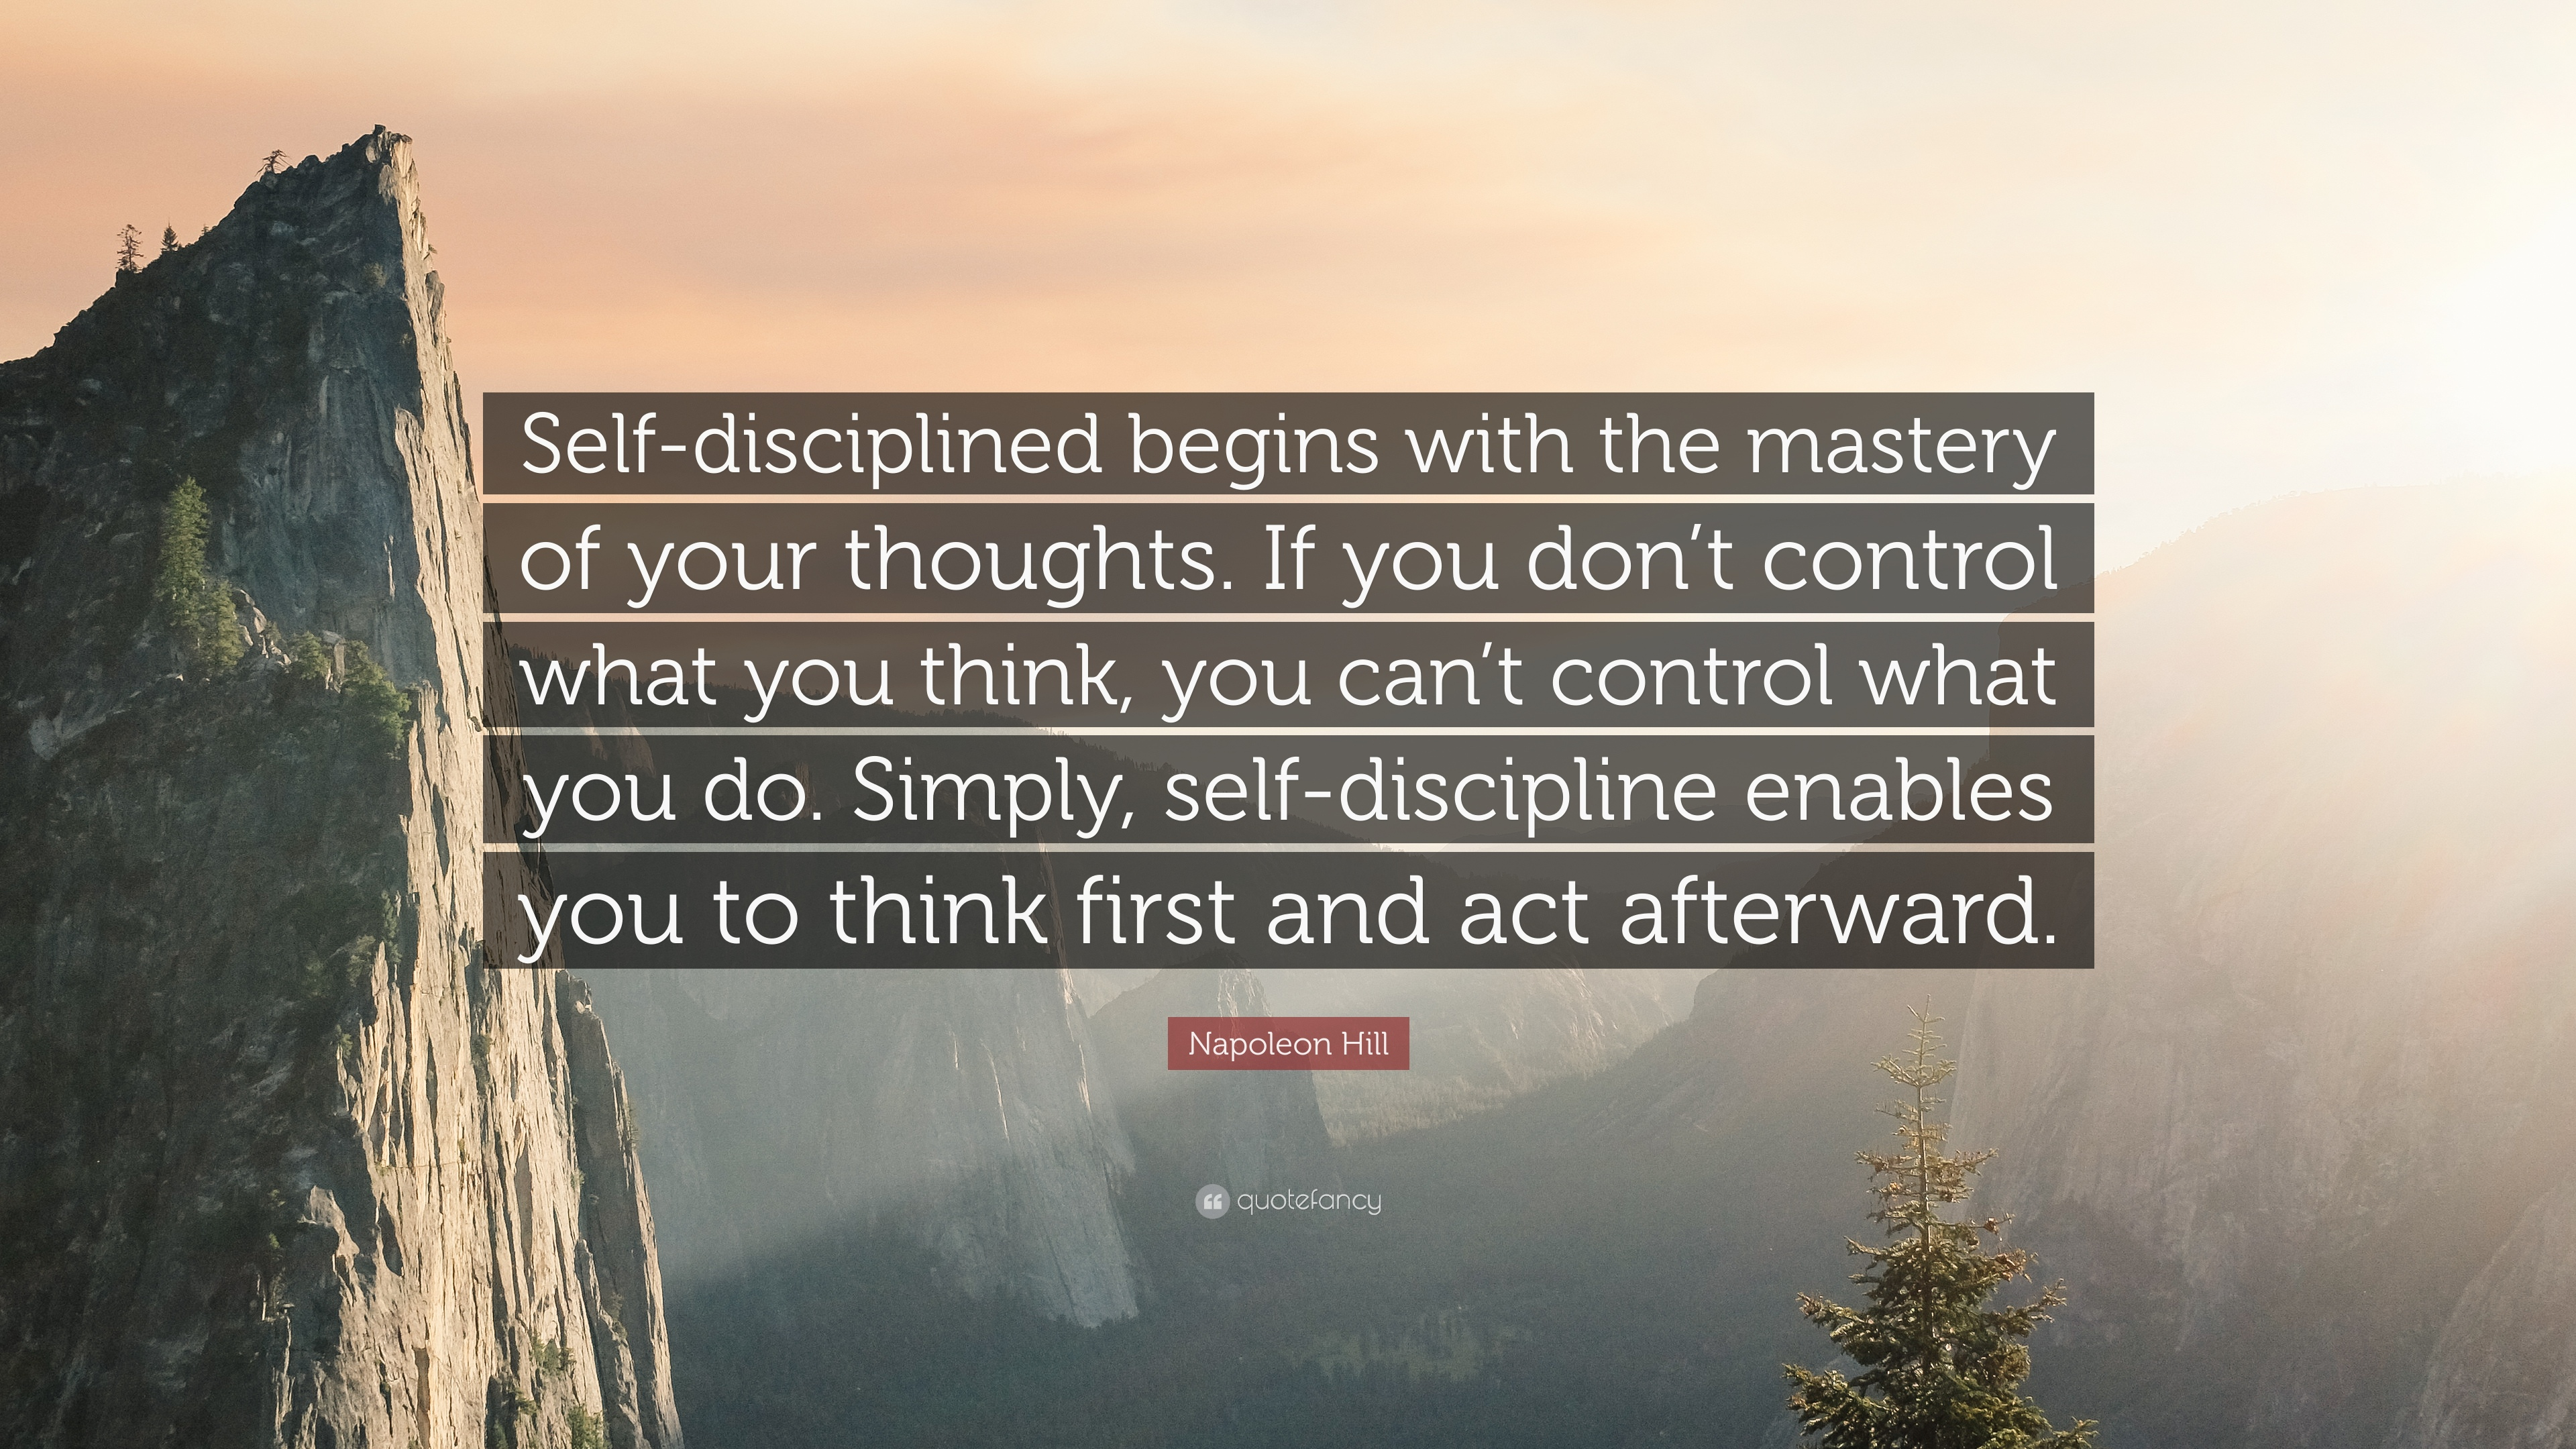 Marvelous Quotes About Thinking: U201cSelf Disciplined Begins With The Mastery Of Your  Thoughts.